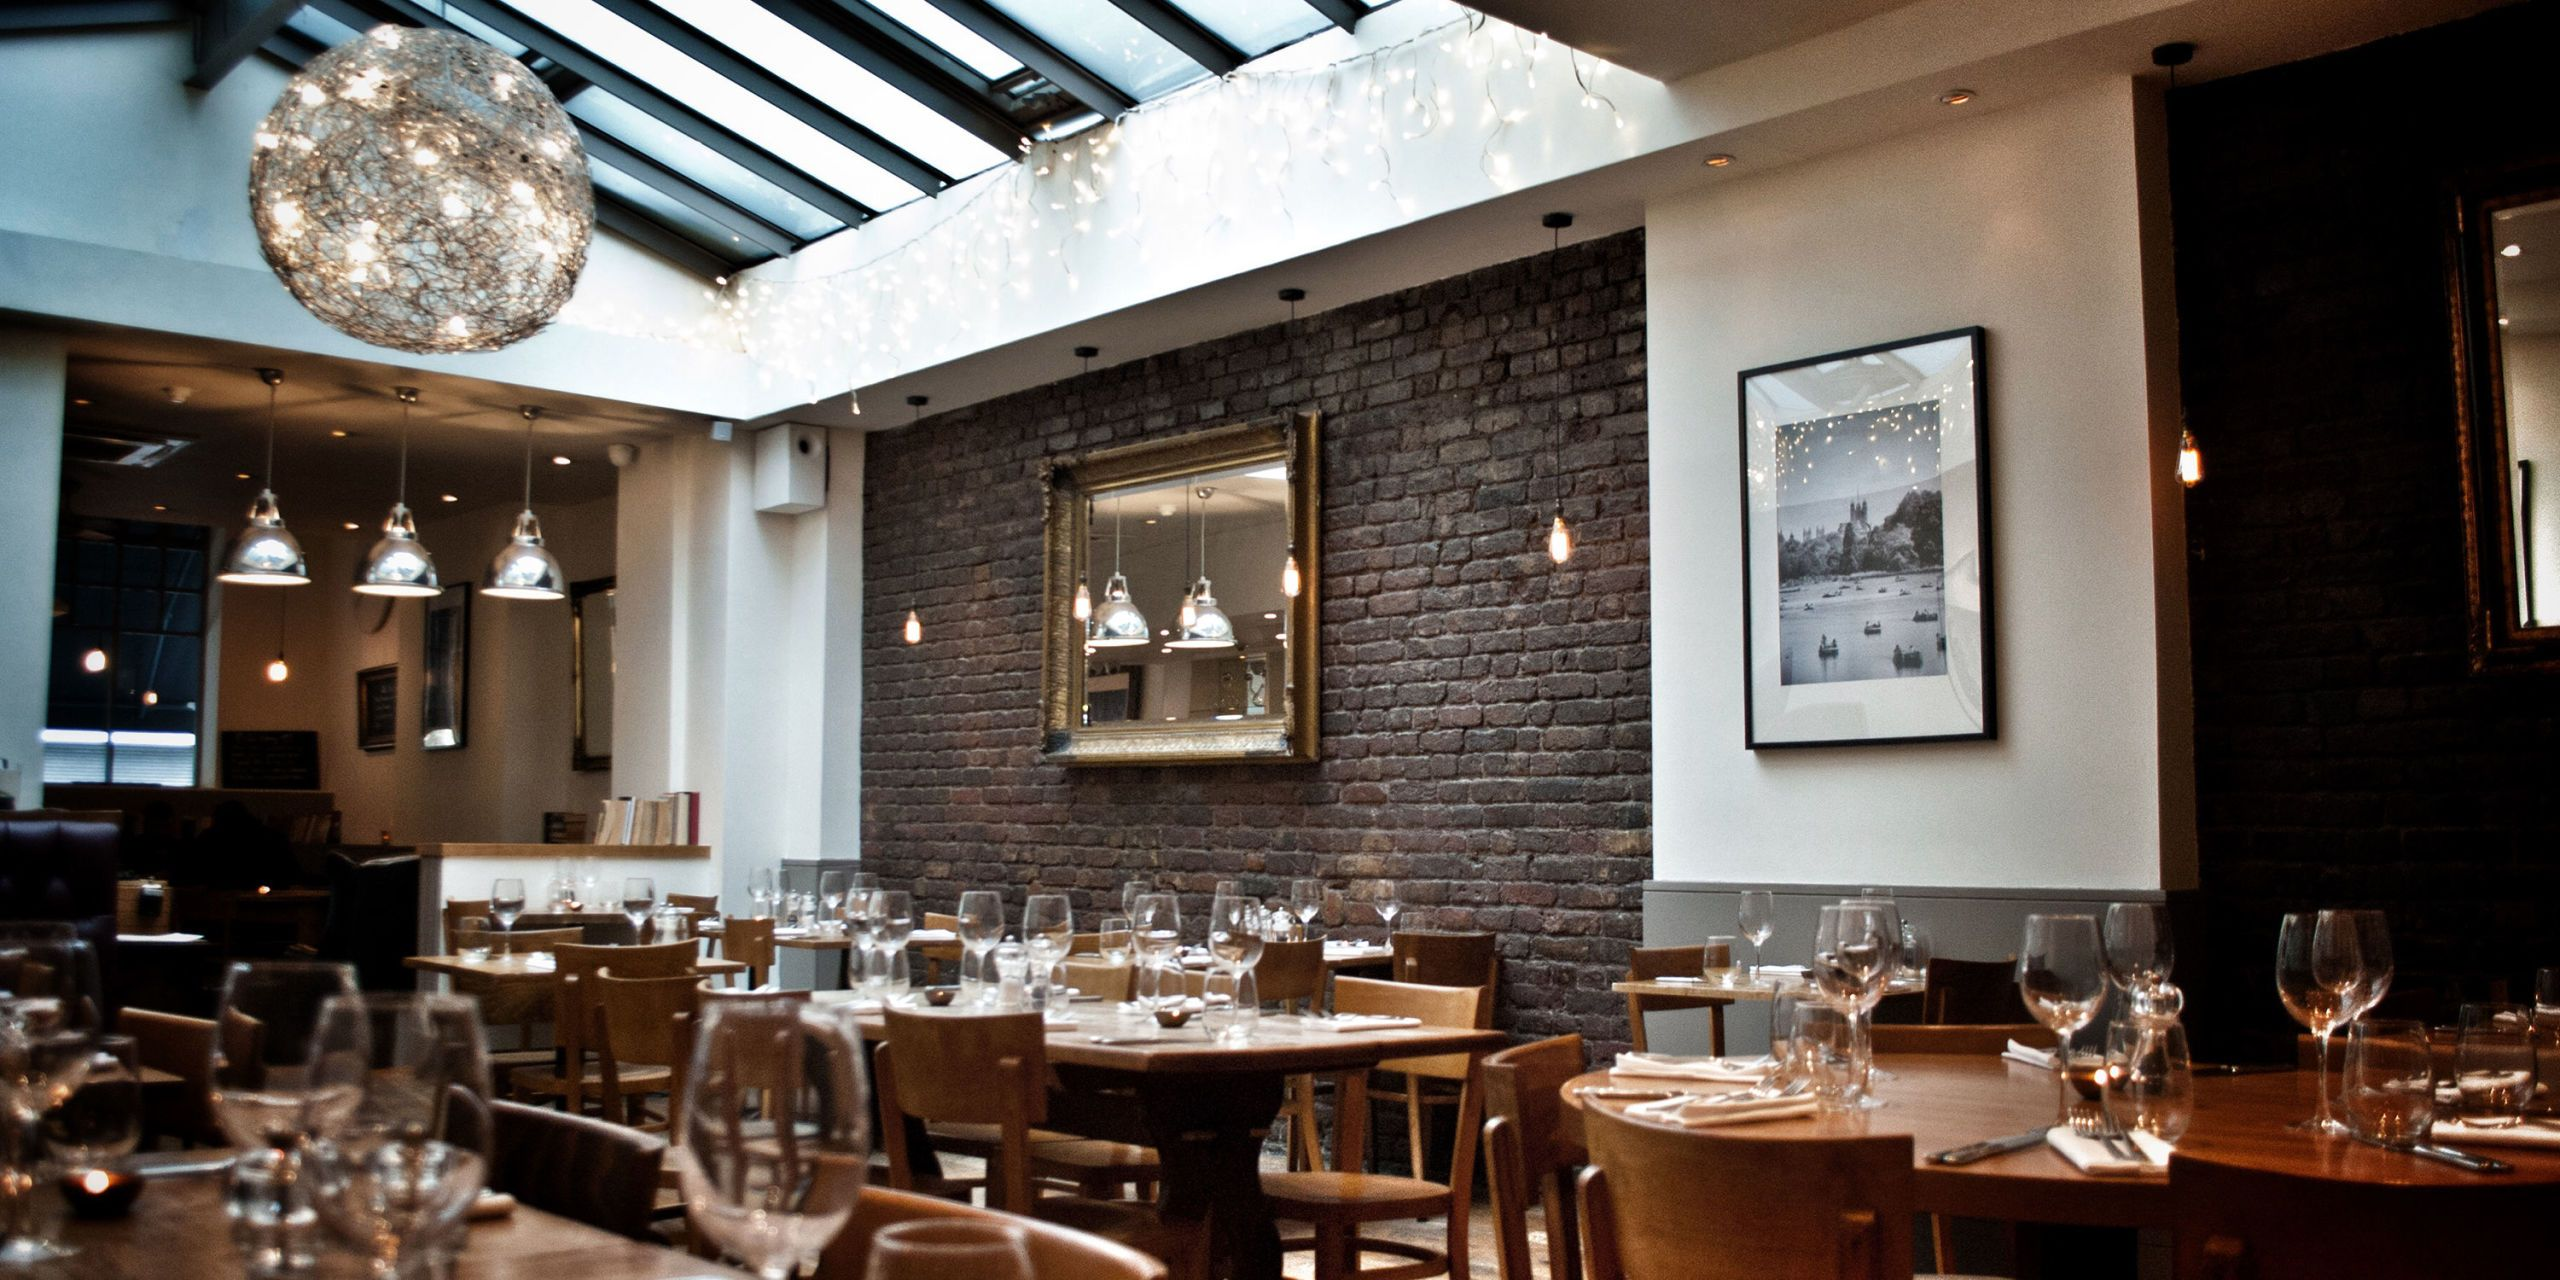 18 local London restaurants that truly excel